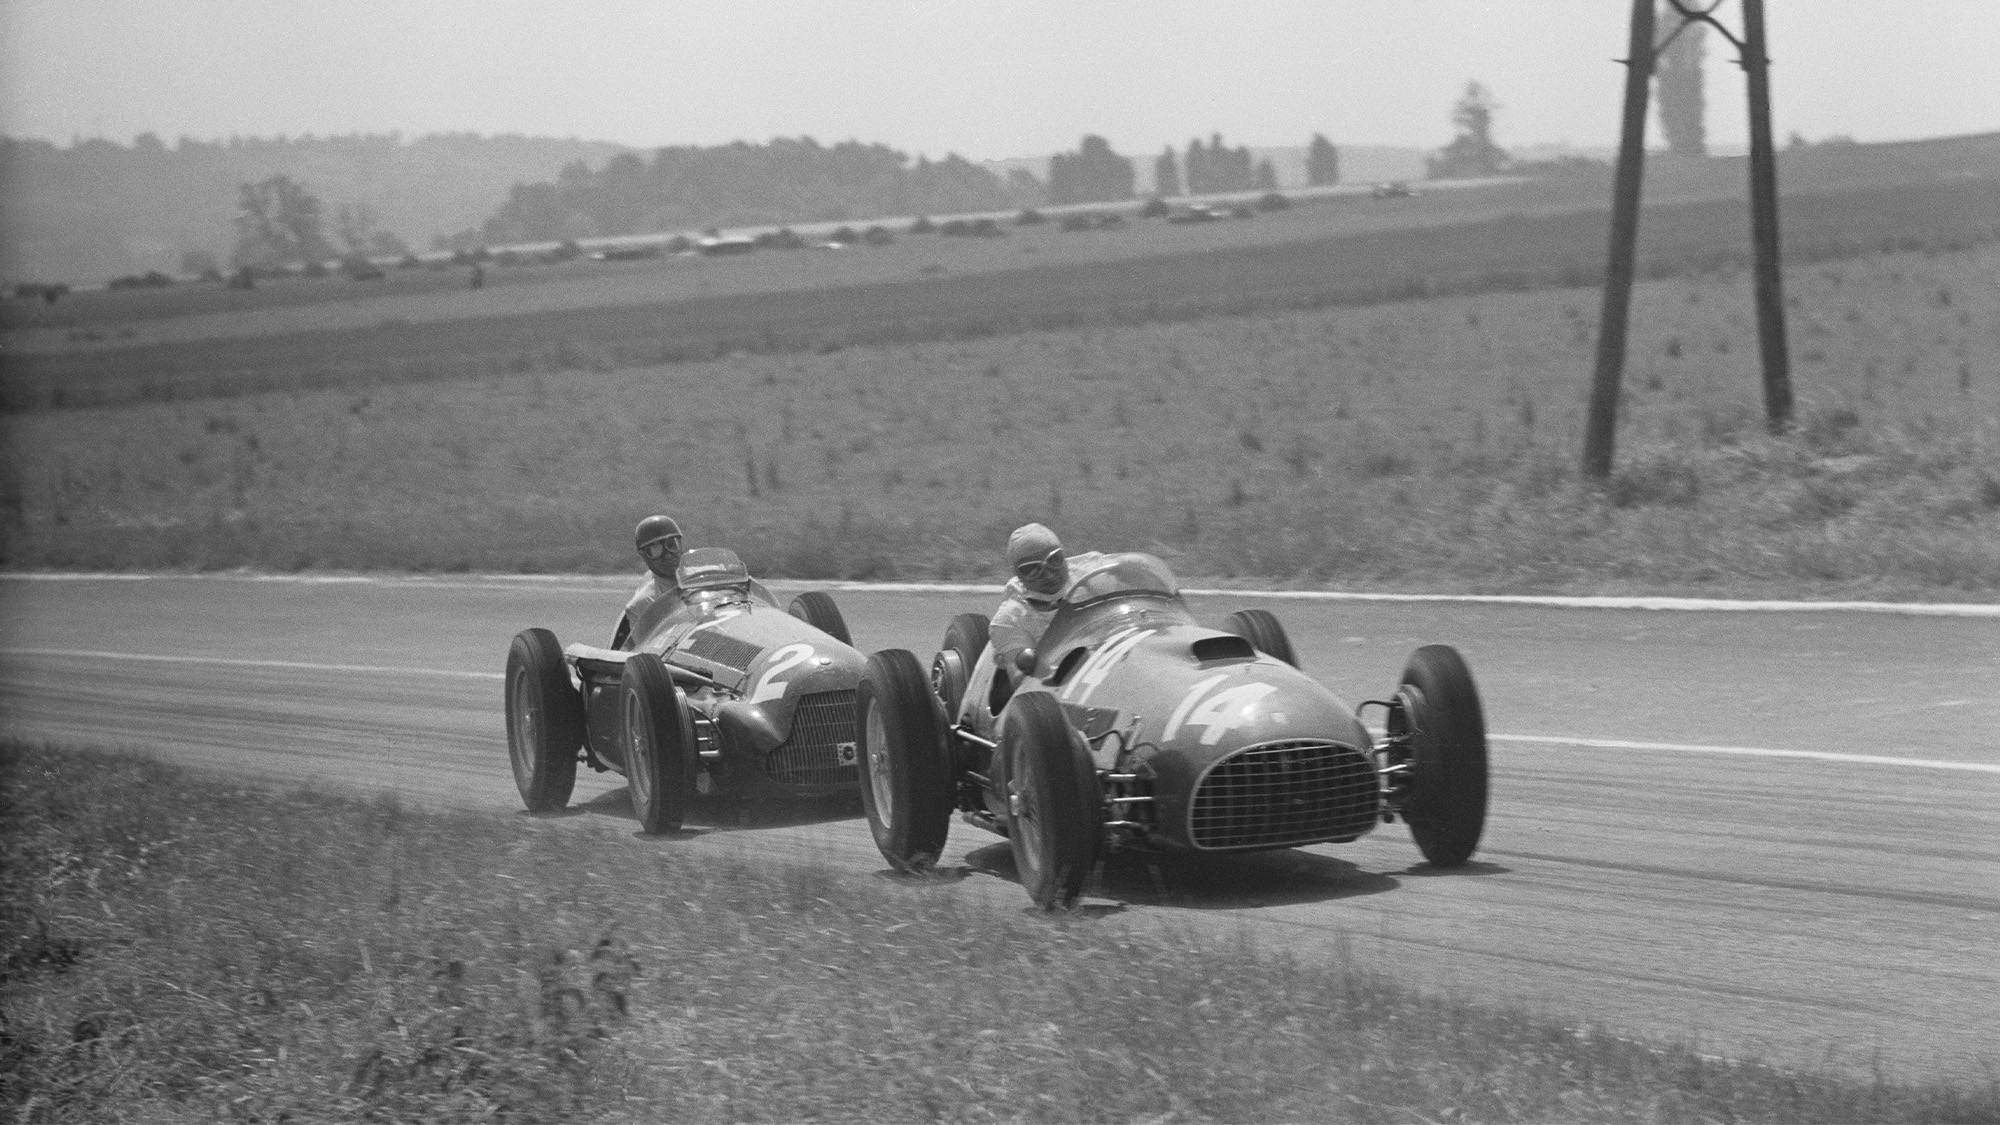 1951 French Grand Prix Gonzalez and Farina